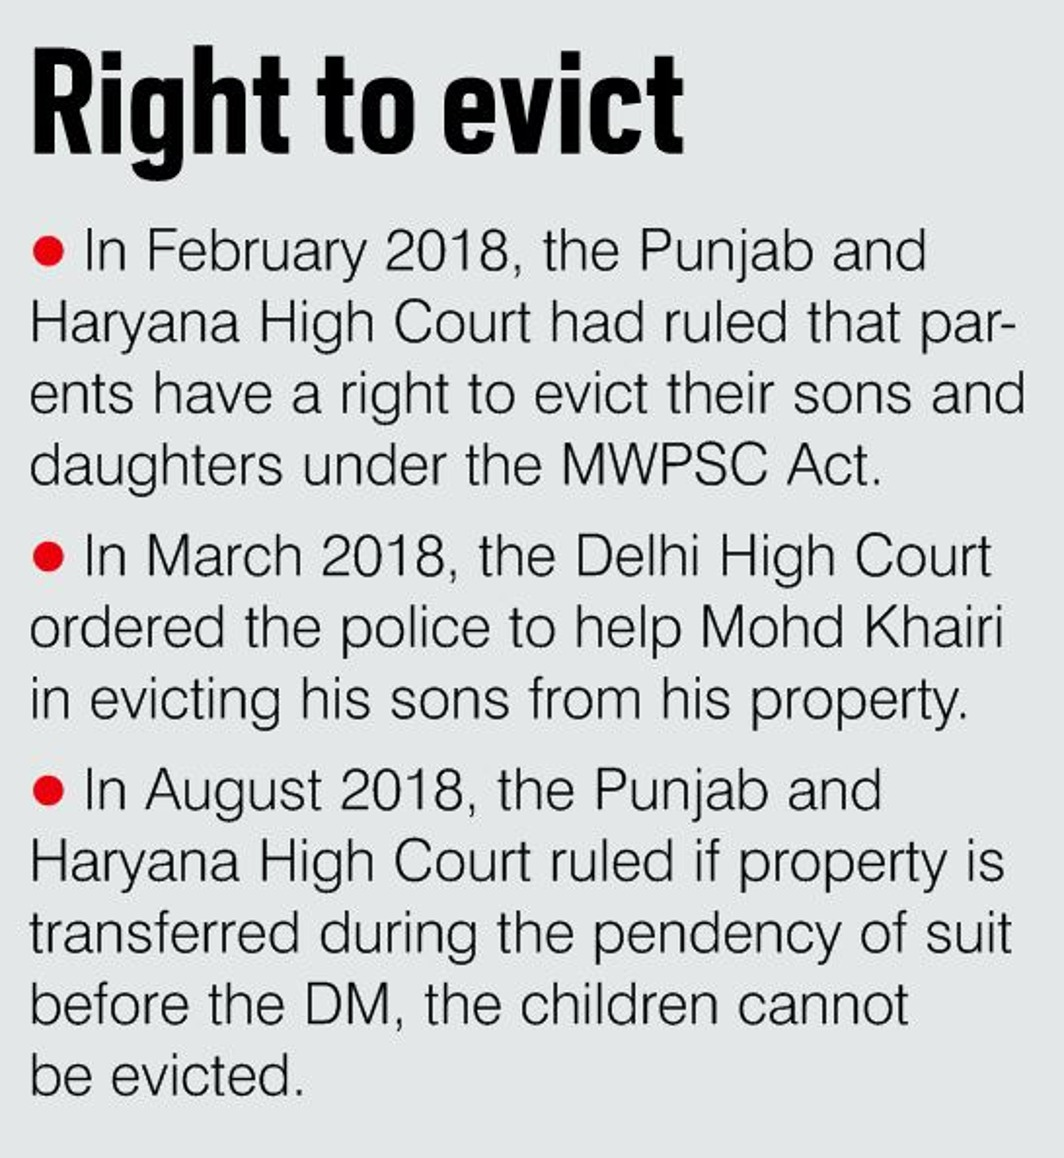 Right to cvict